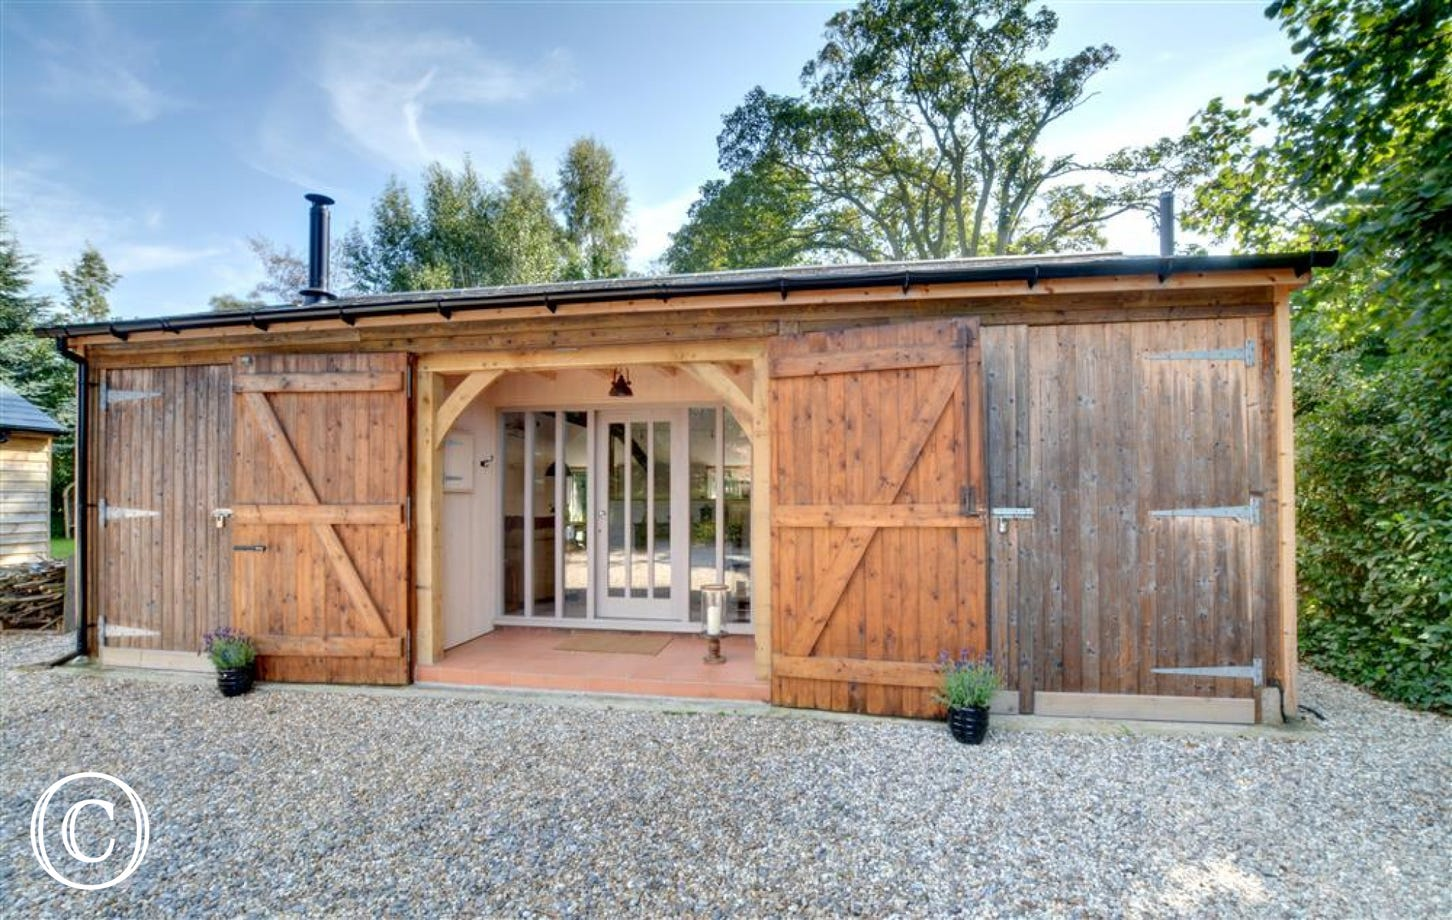 Charming conversion near the seaside town of Deal